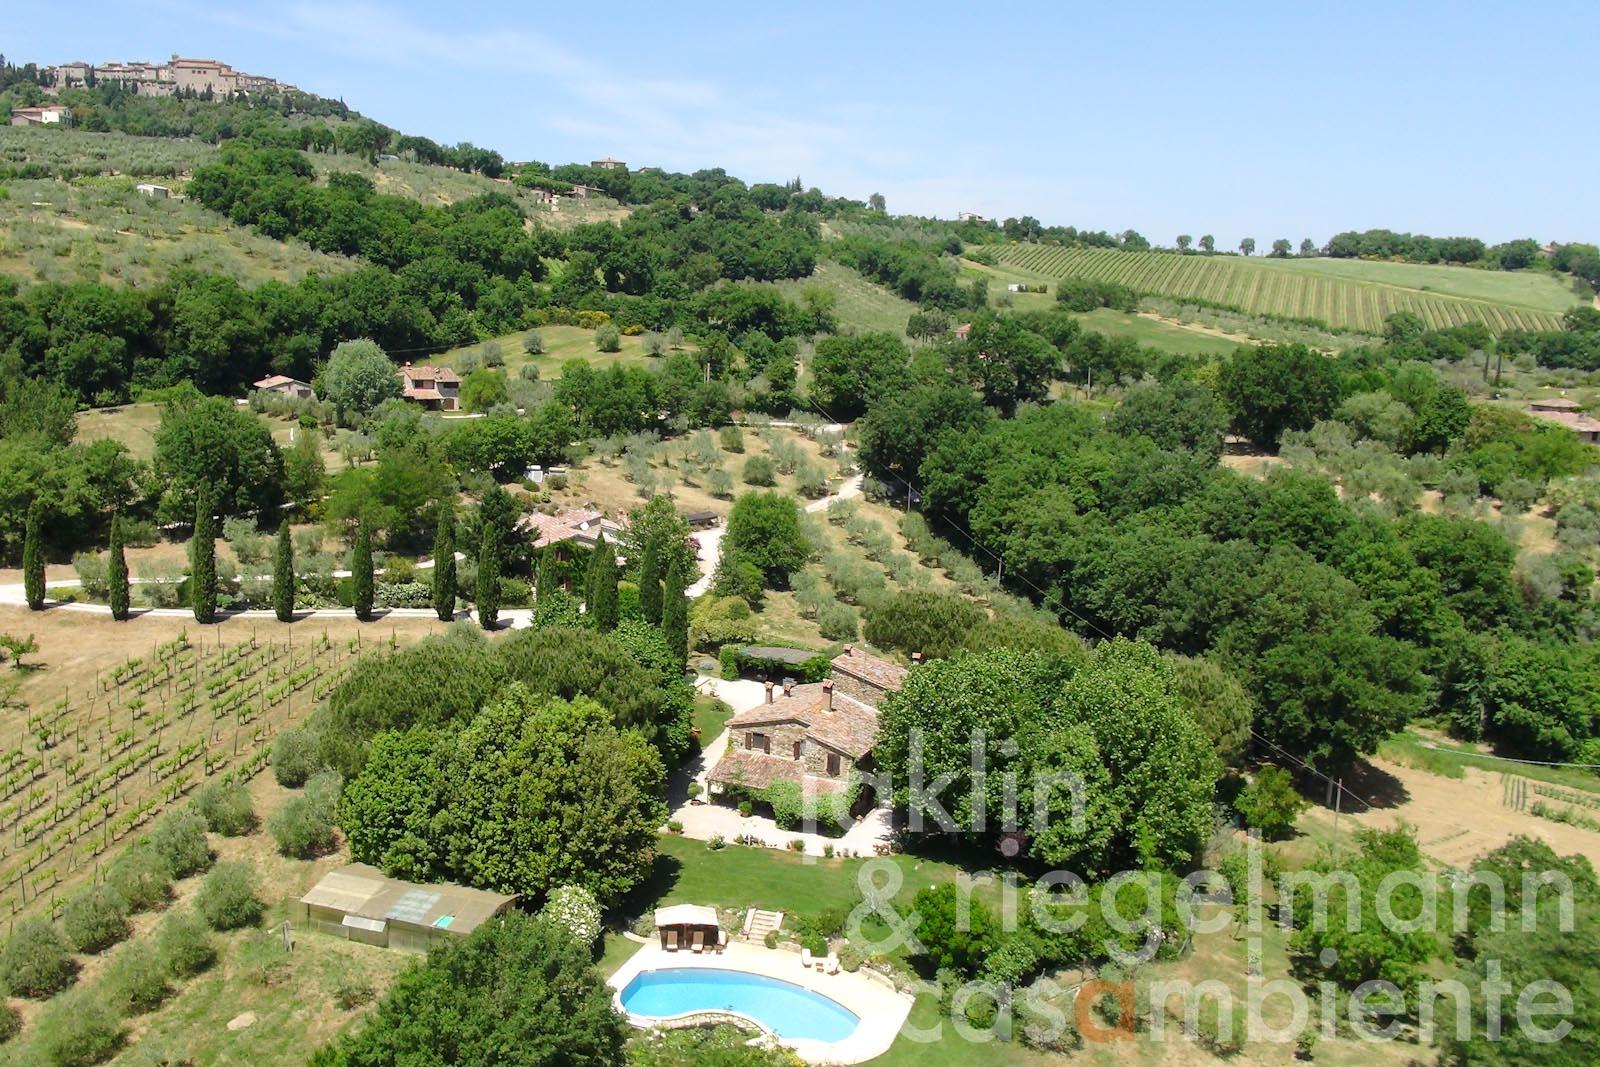 The prestigious country estate with swimming pool and private golf course near Todi in Umbria